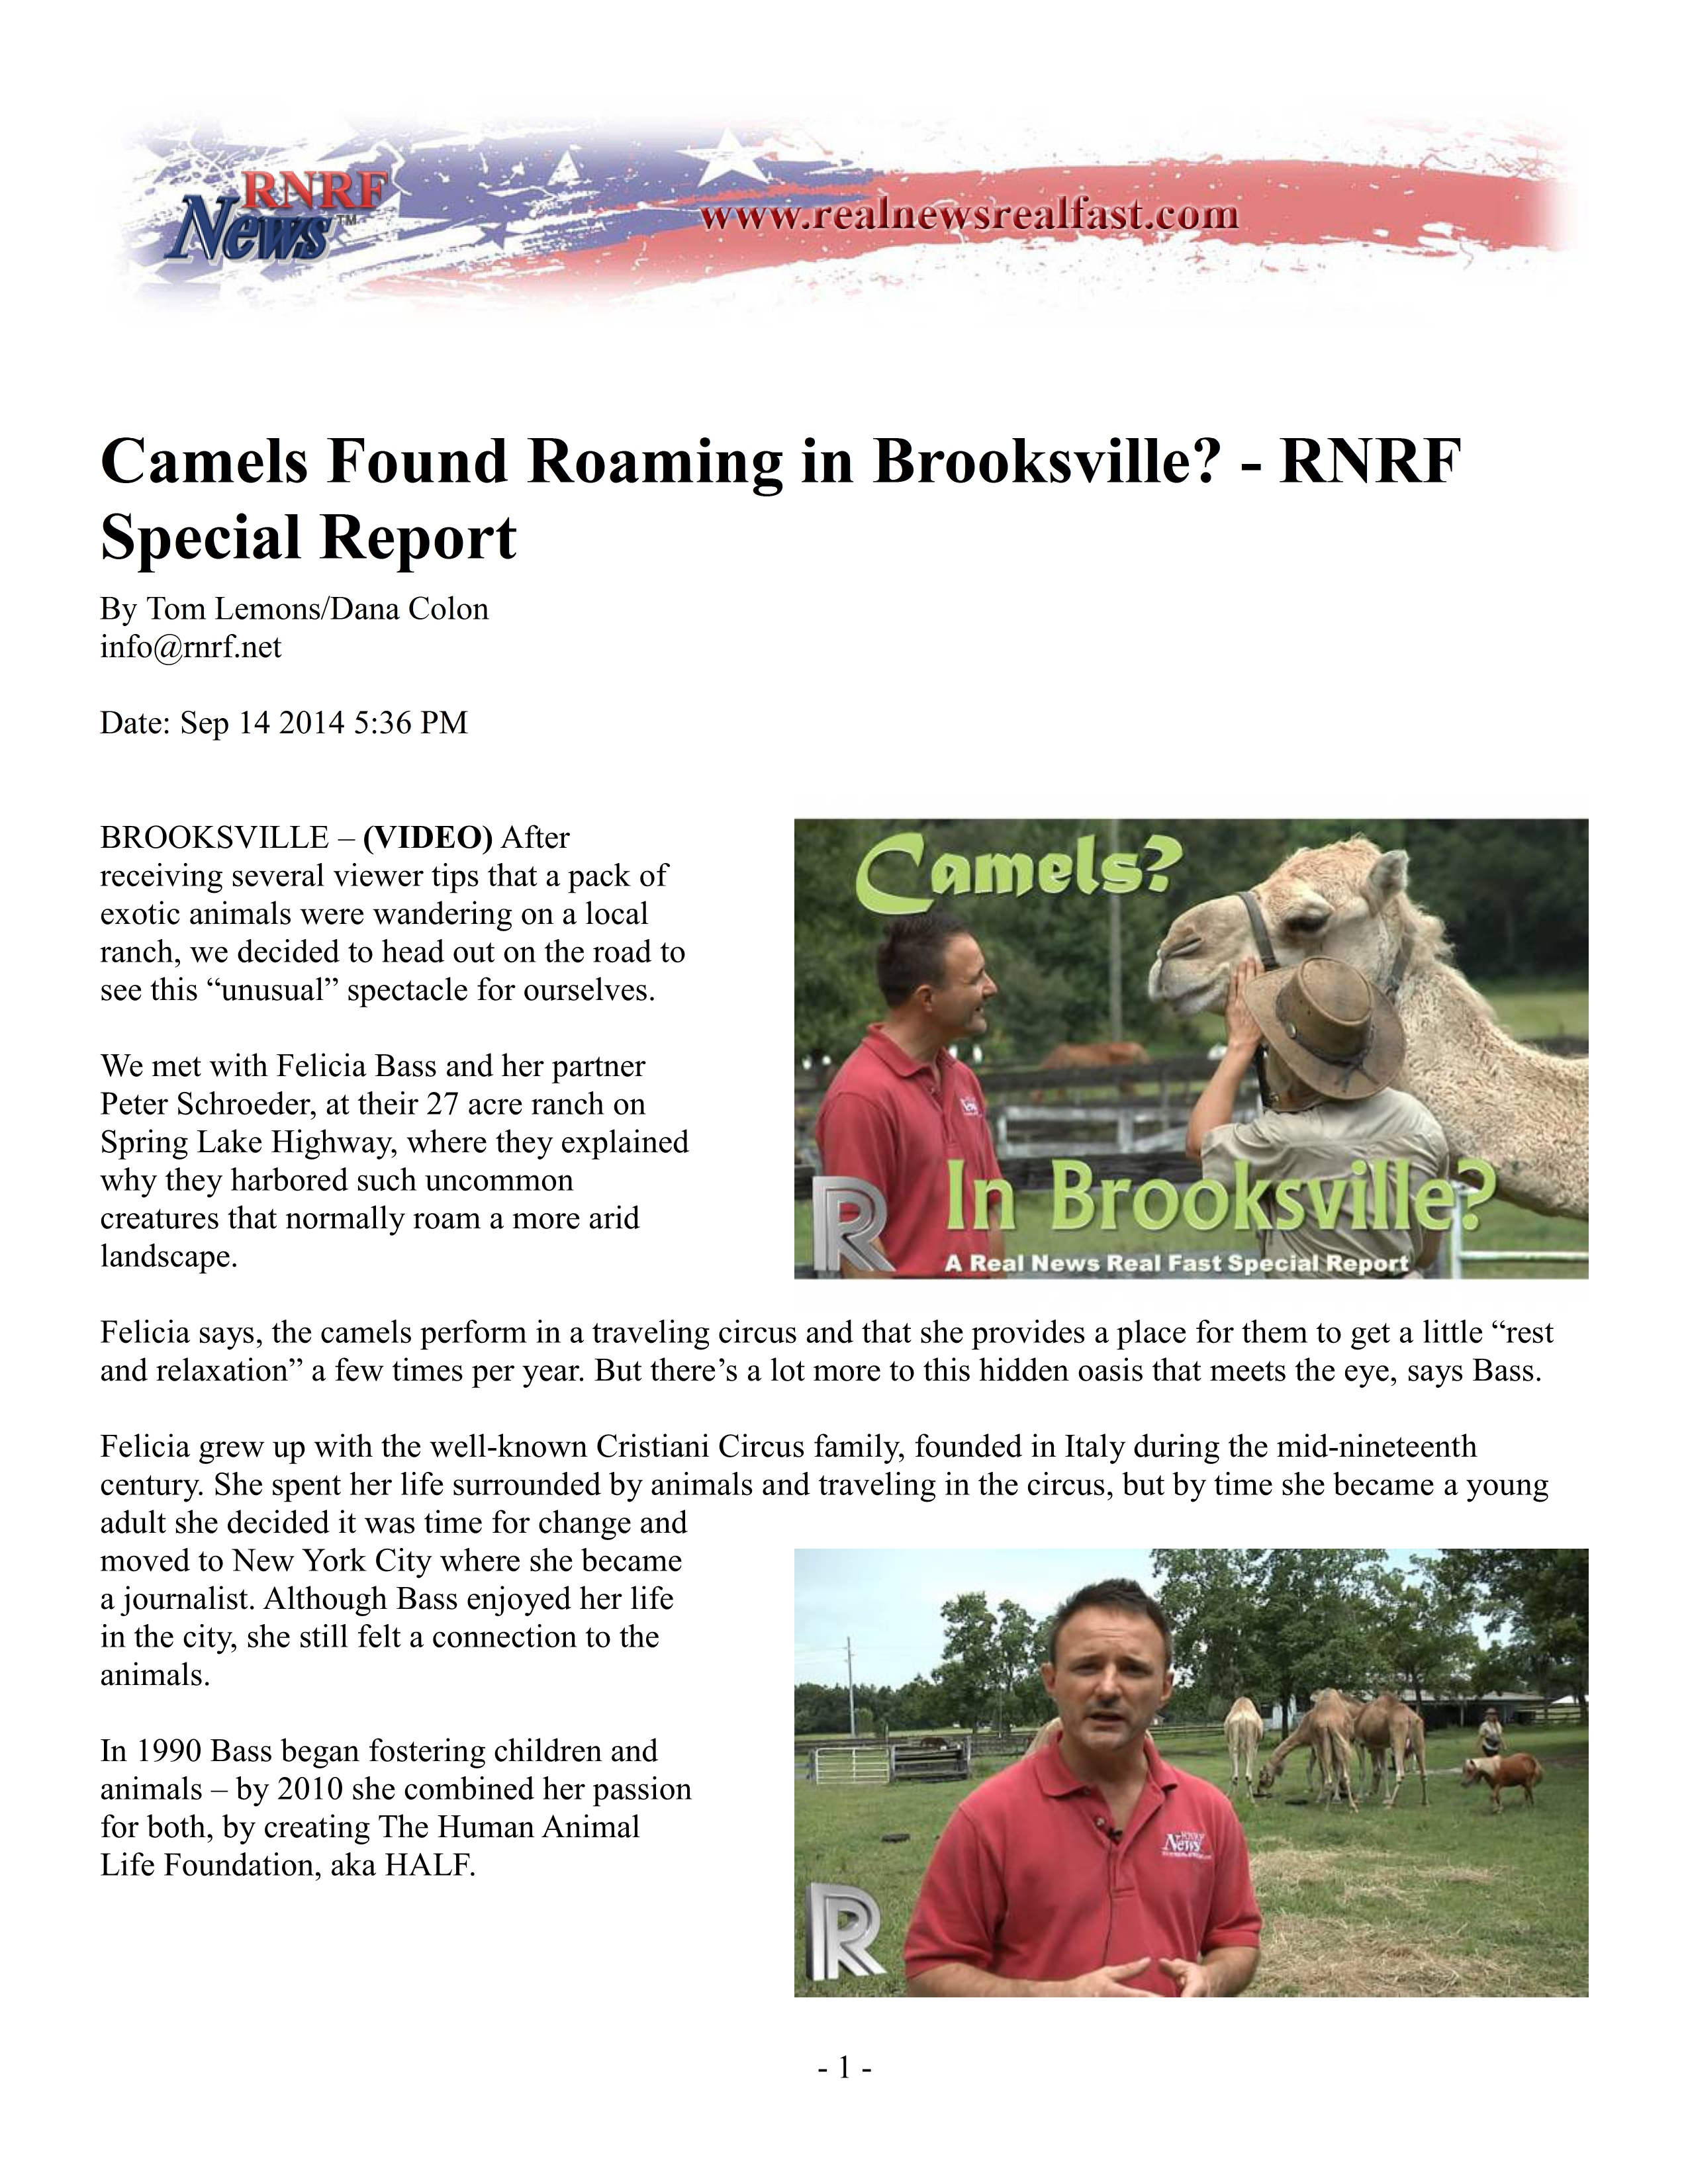 Camels Found Roaming in Brooksville - RNRF Special Report 09-14-2014 Pg1